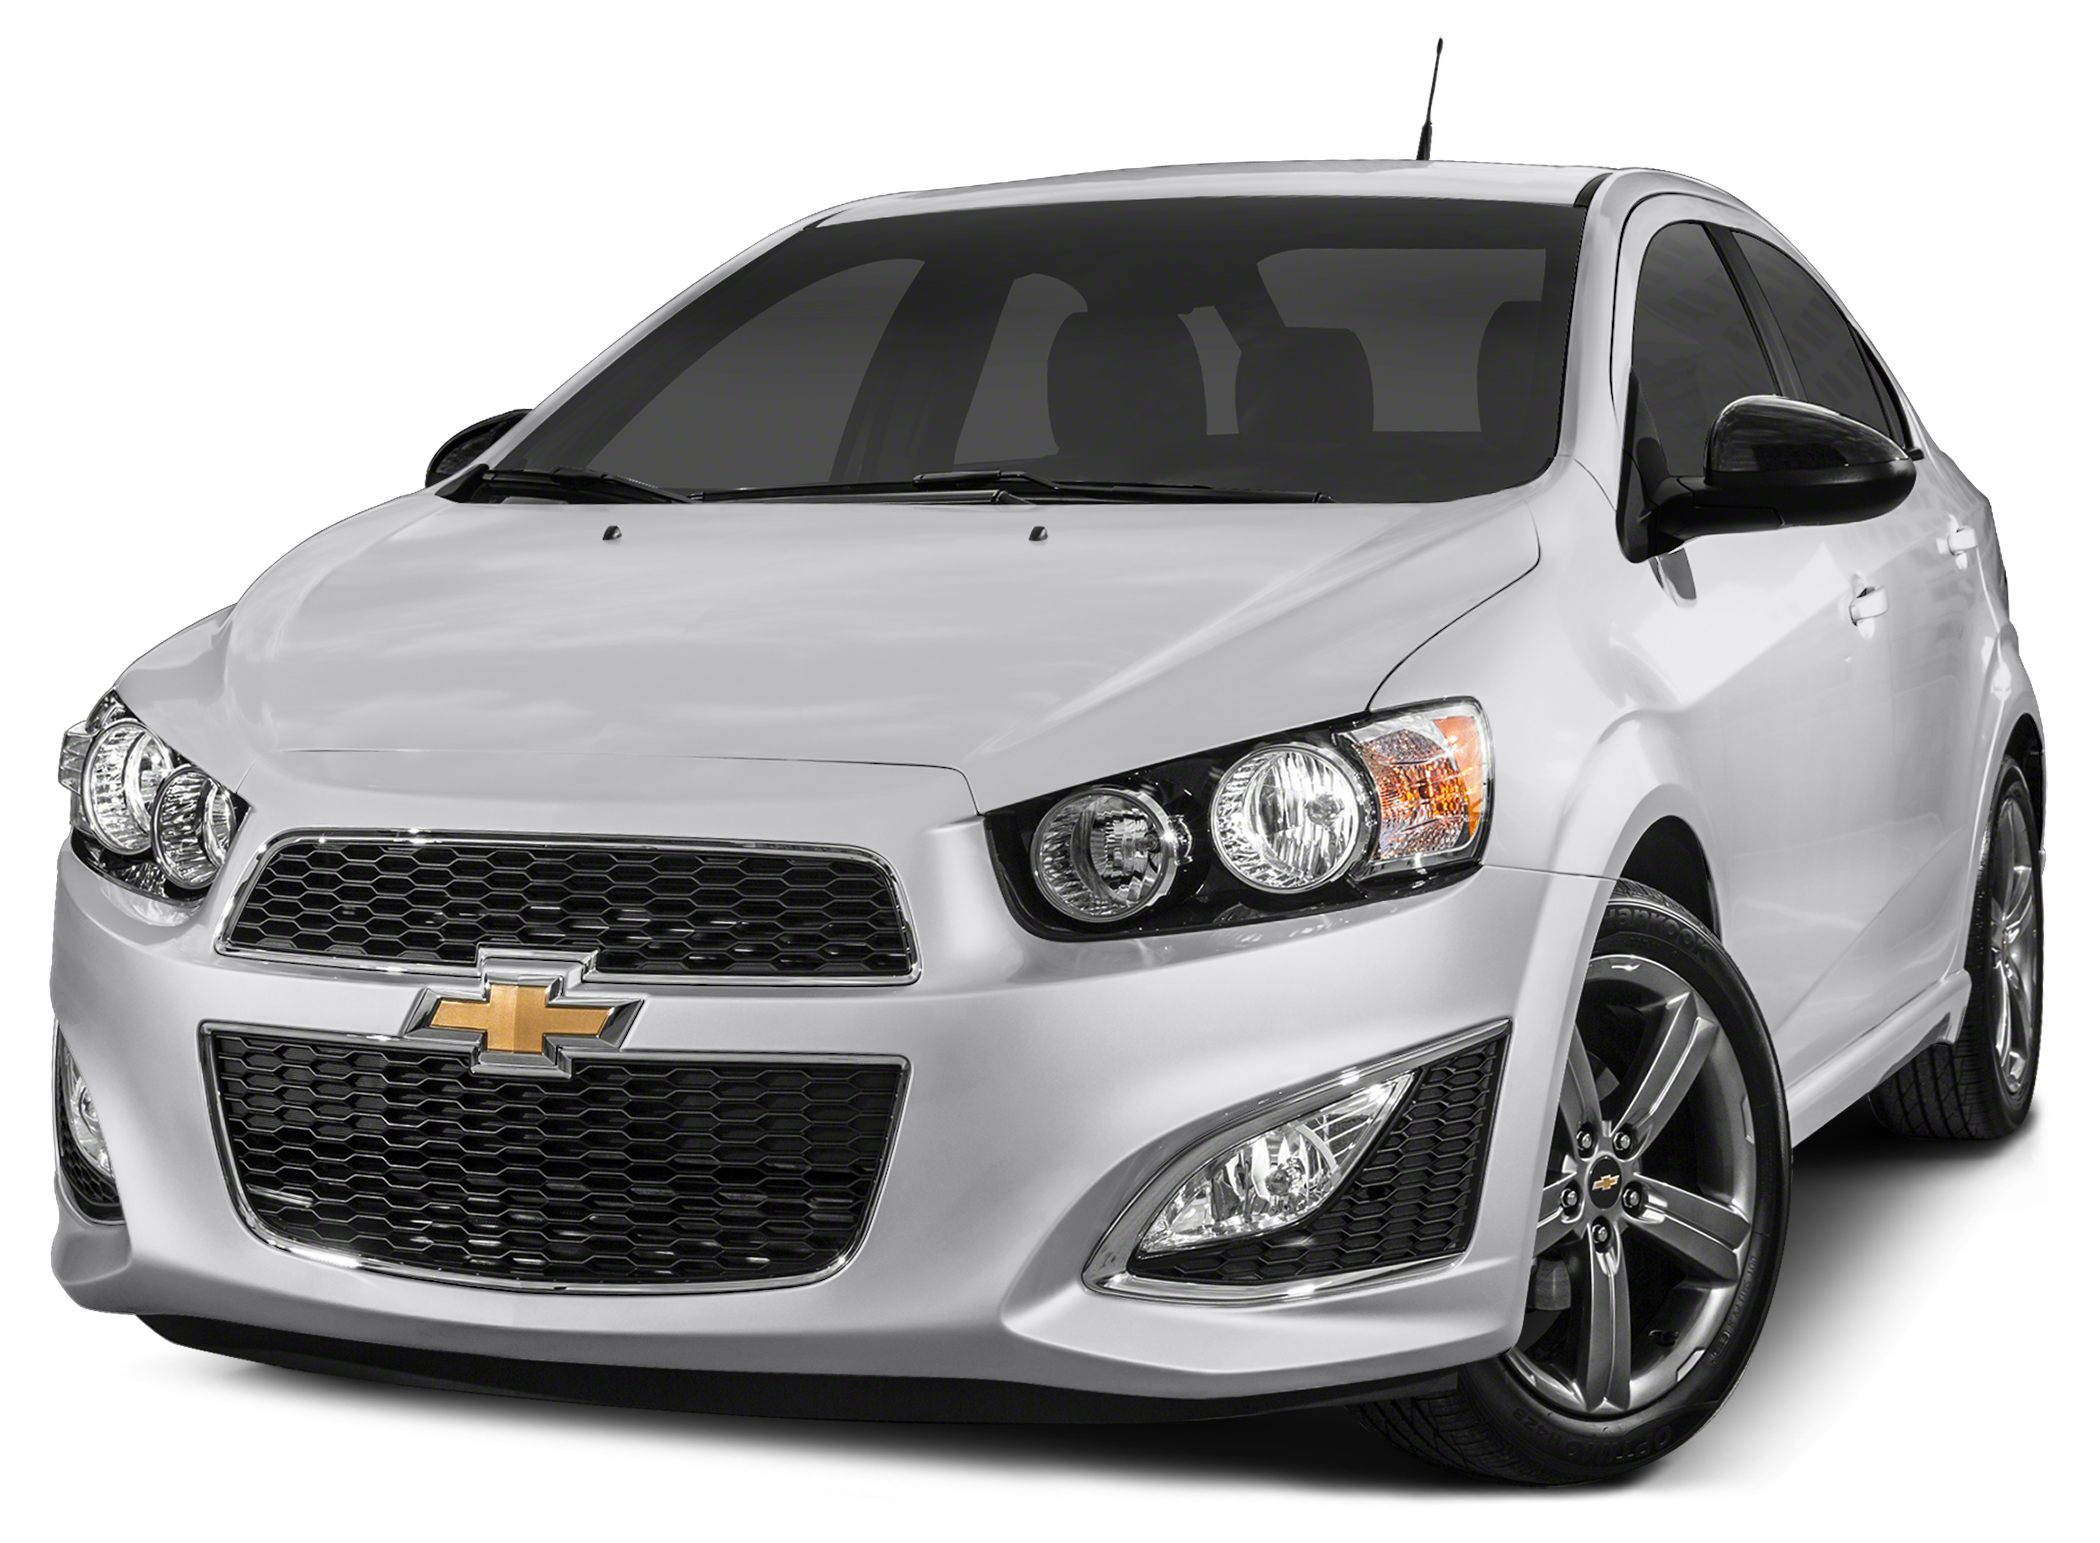 2014 Chevrolet Sonic RS GREAT MILES 240 EPA 34 MPG Hwy27 MPG City Heated Leather Seats Back-Up